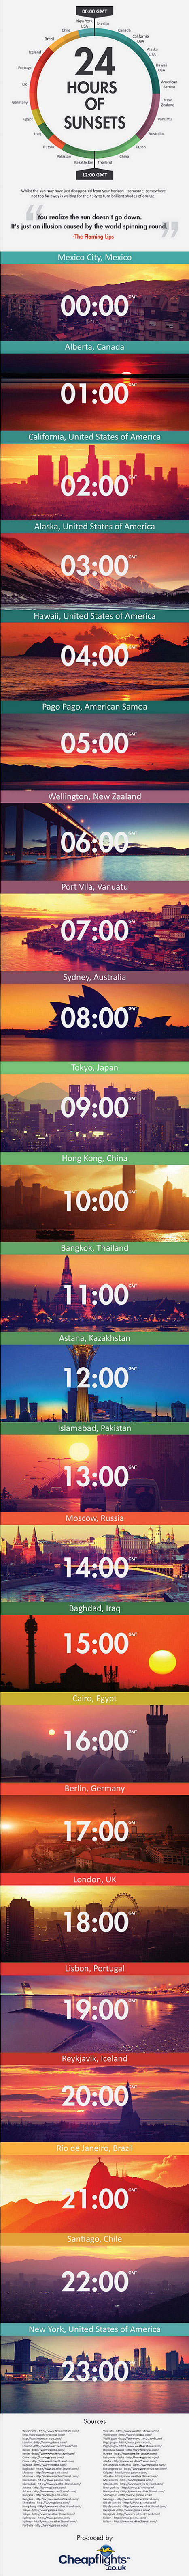 Sunsets Around the World-Infographic